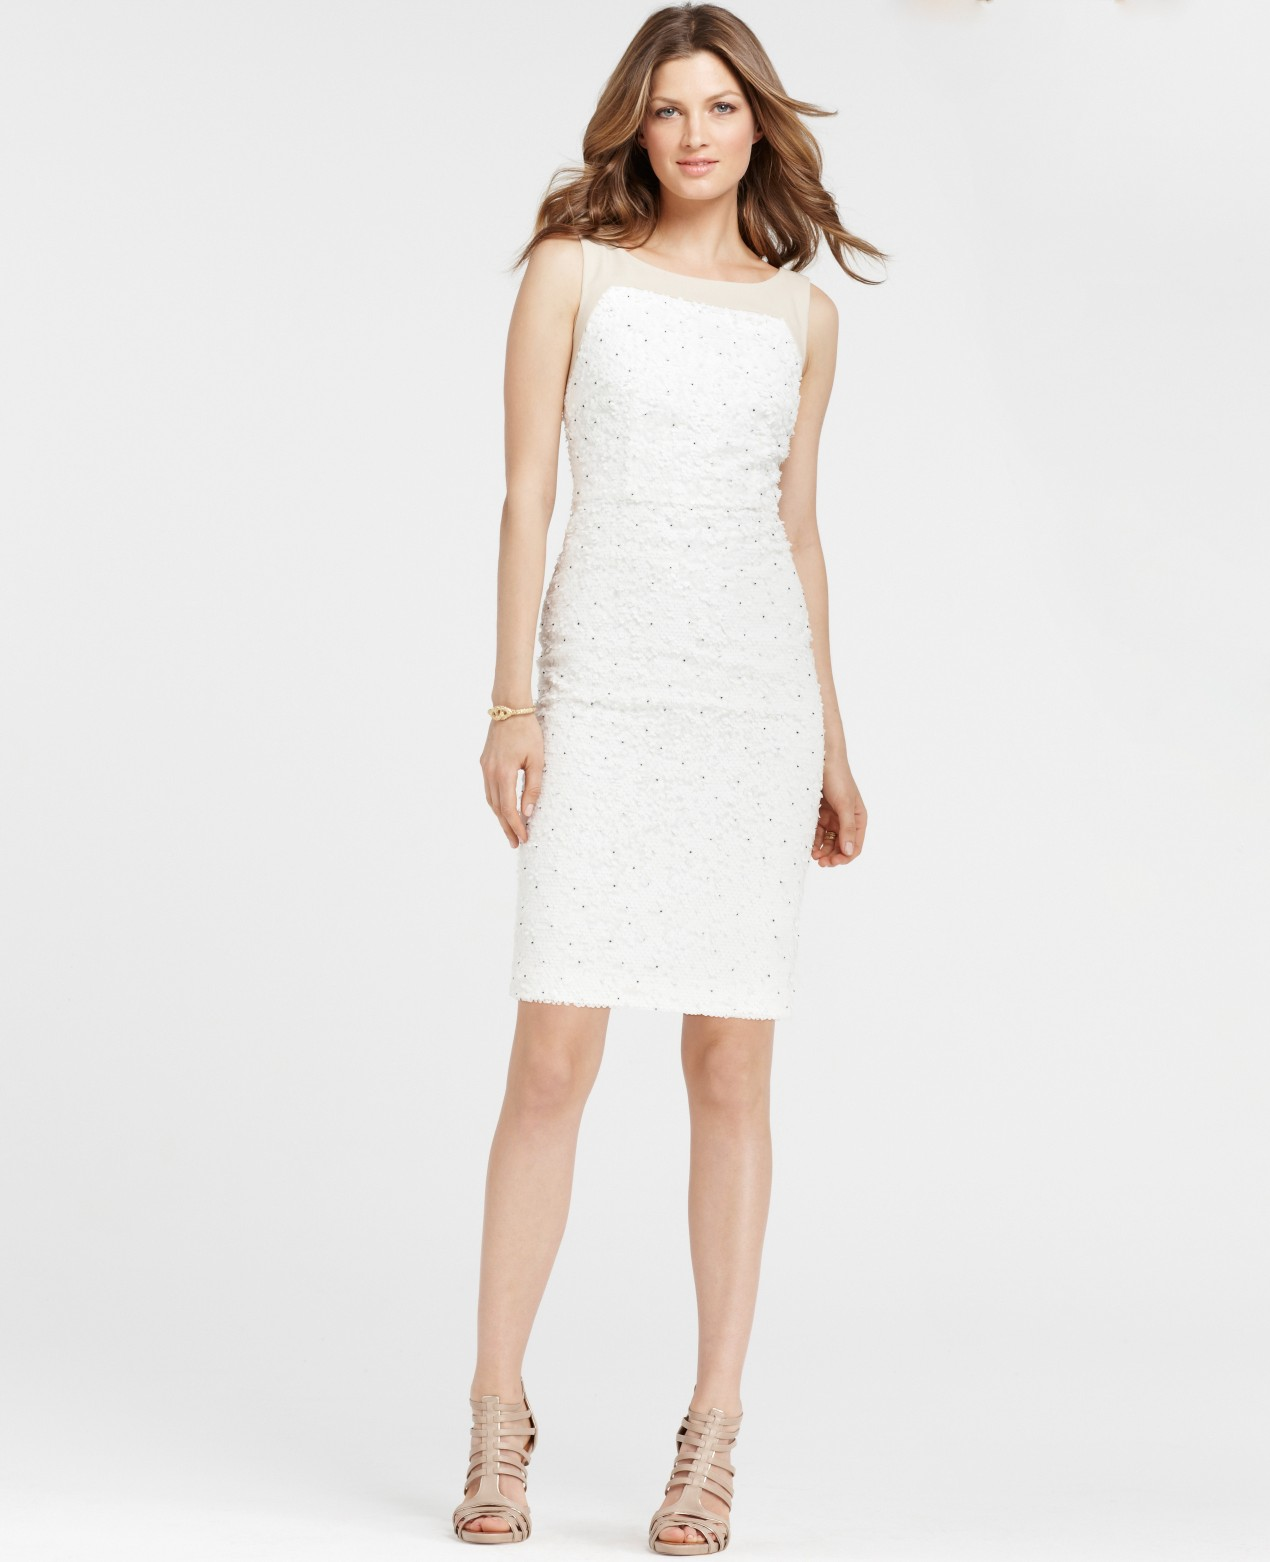 Lyst - Ann Taylor Icing Dress in Natural